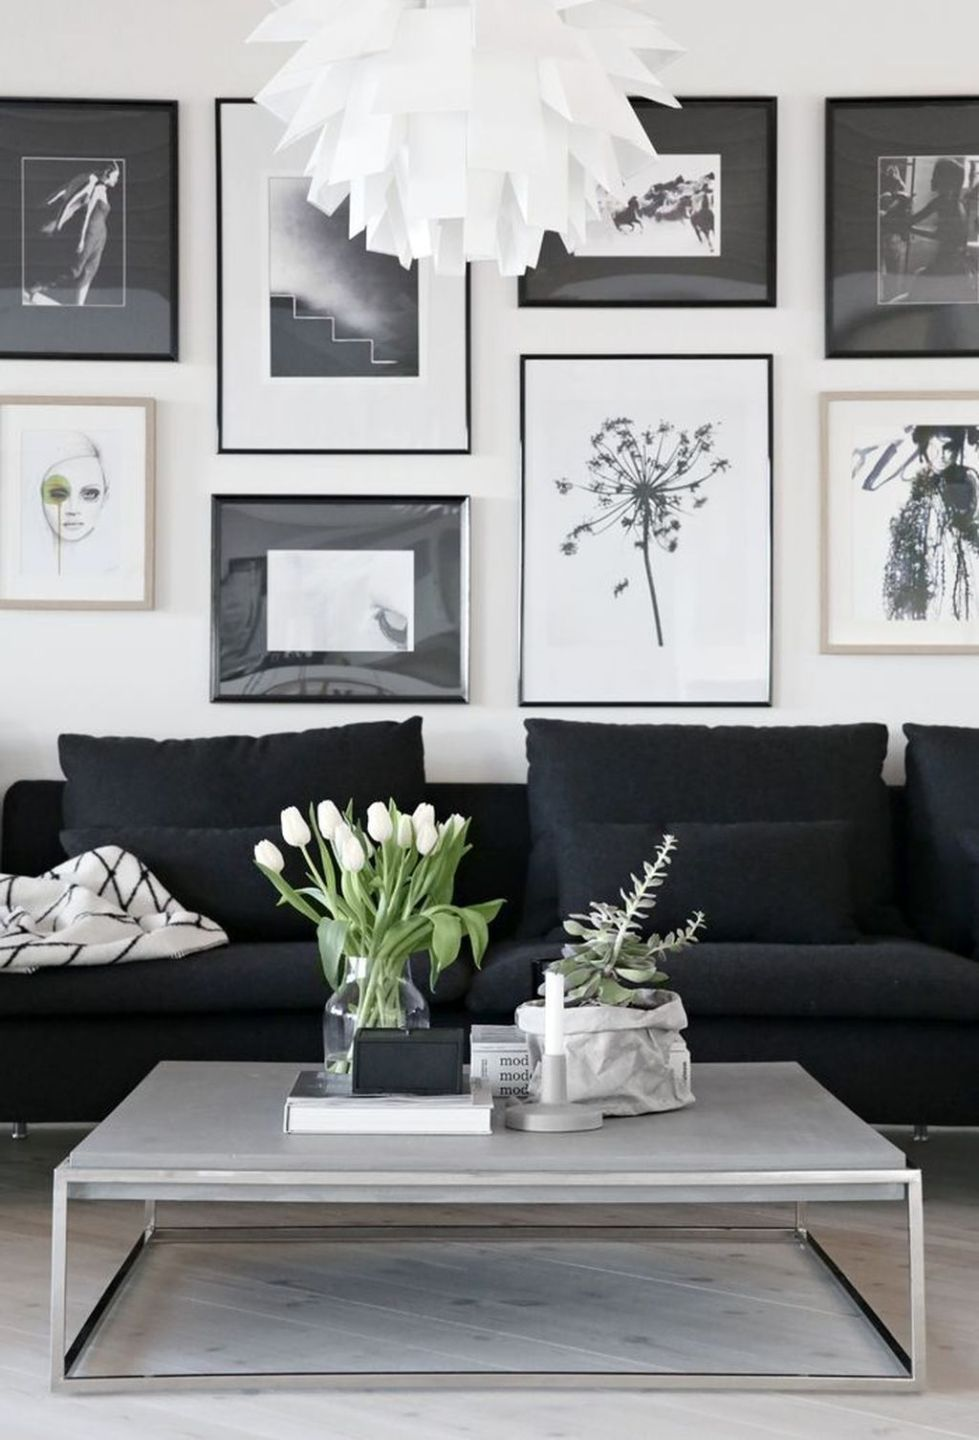 Awesome 30 Decorating Ideas For Blank Wall Behind Couch 19 Machost Co Dining Chair Design Ideas Machostcouk